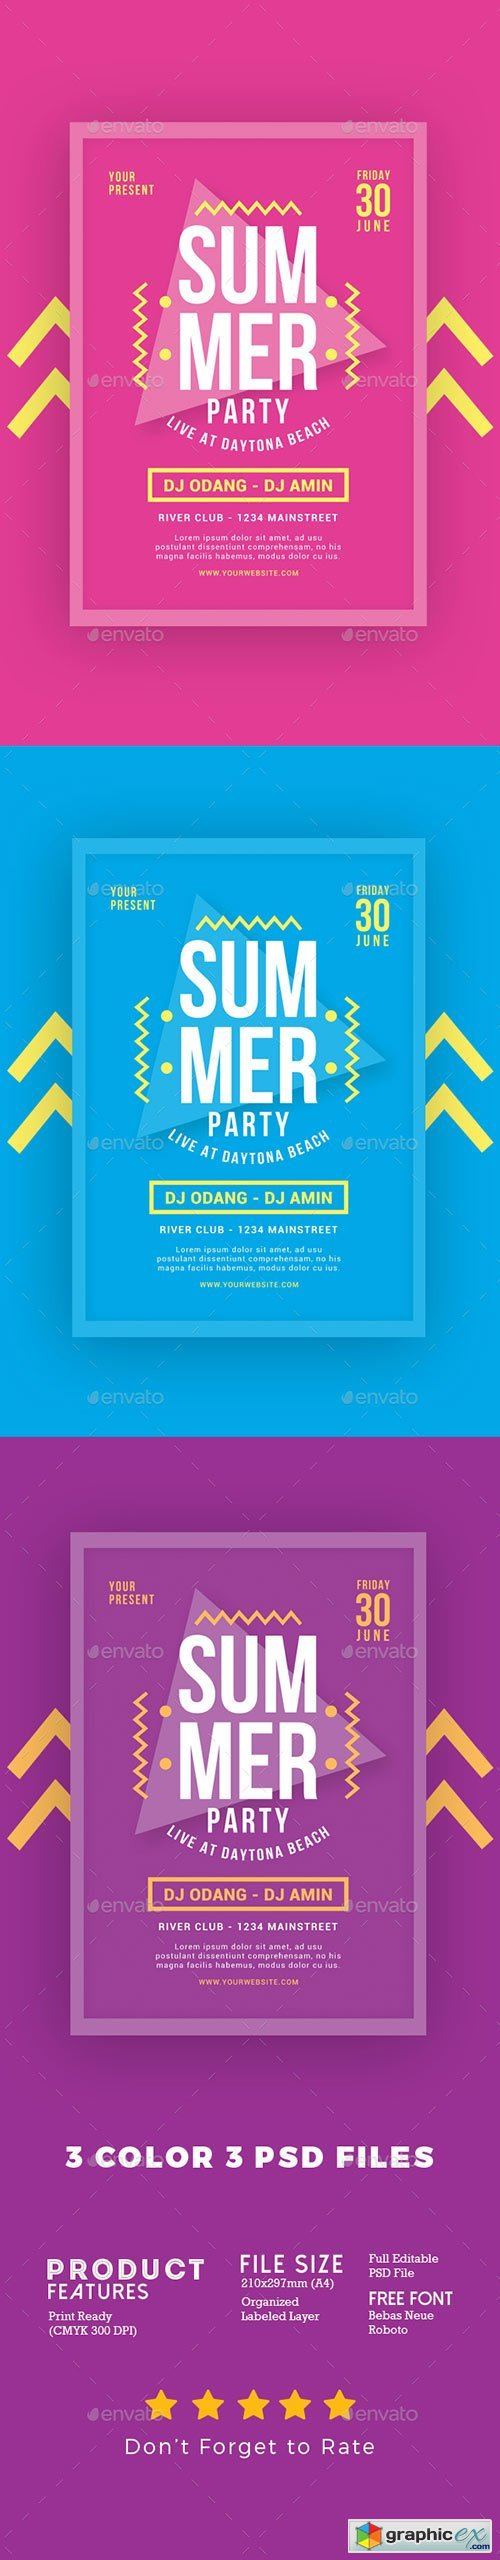 Summer Party Flyer 20185877